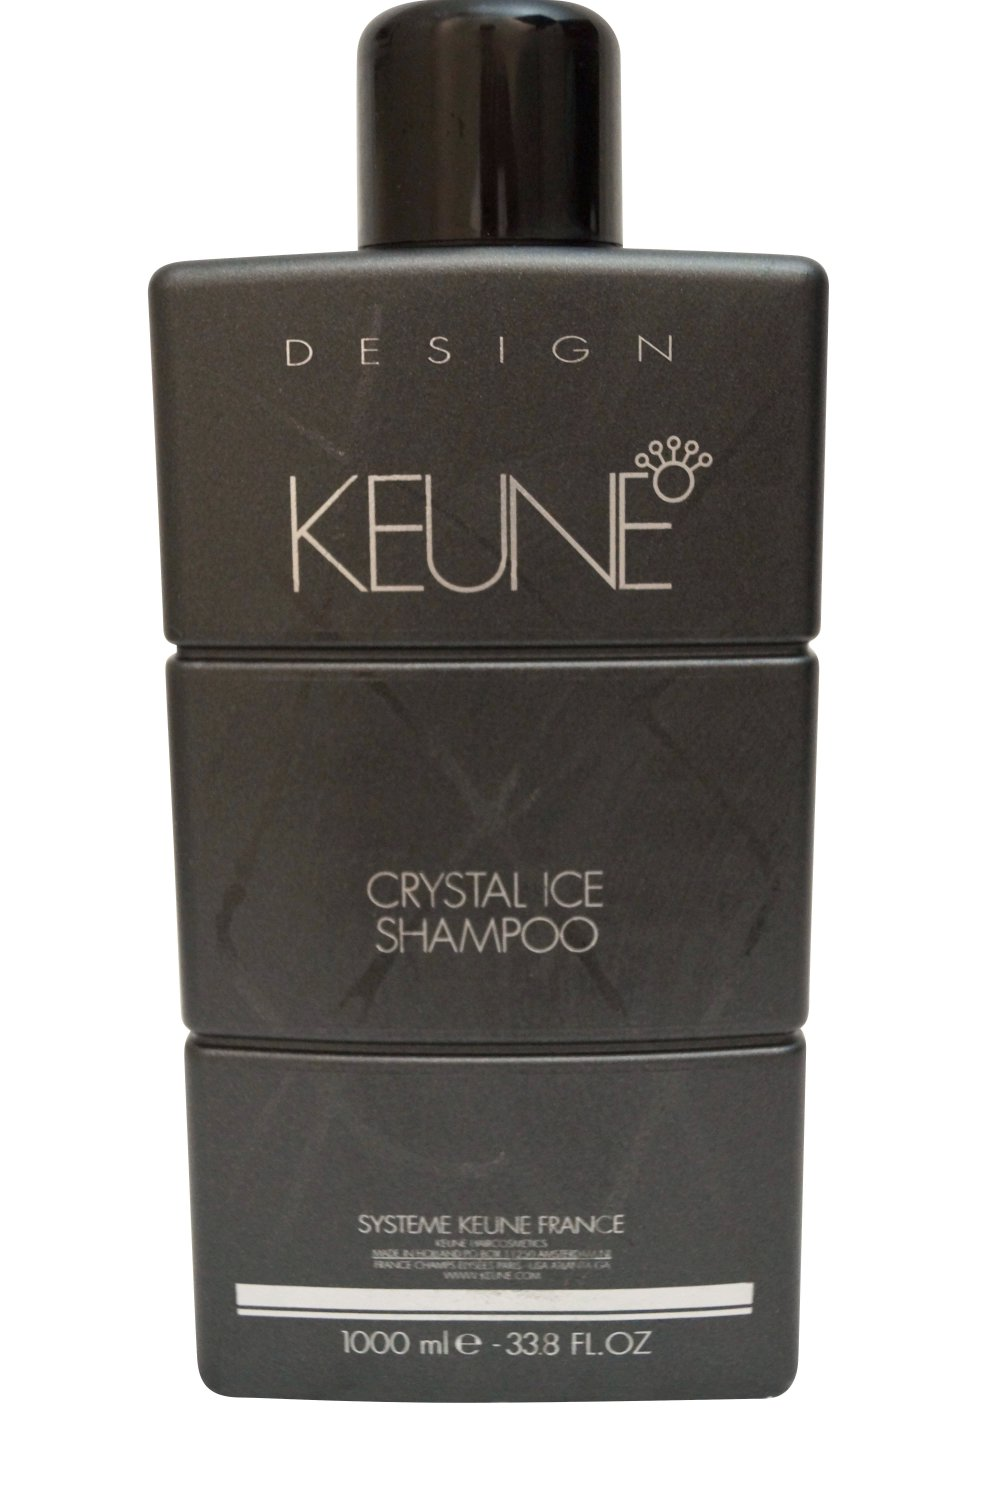 Keune Design Crystal Ice Shampoo 33.8 oz